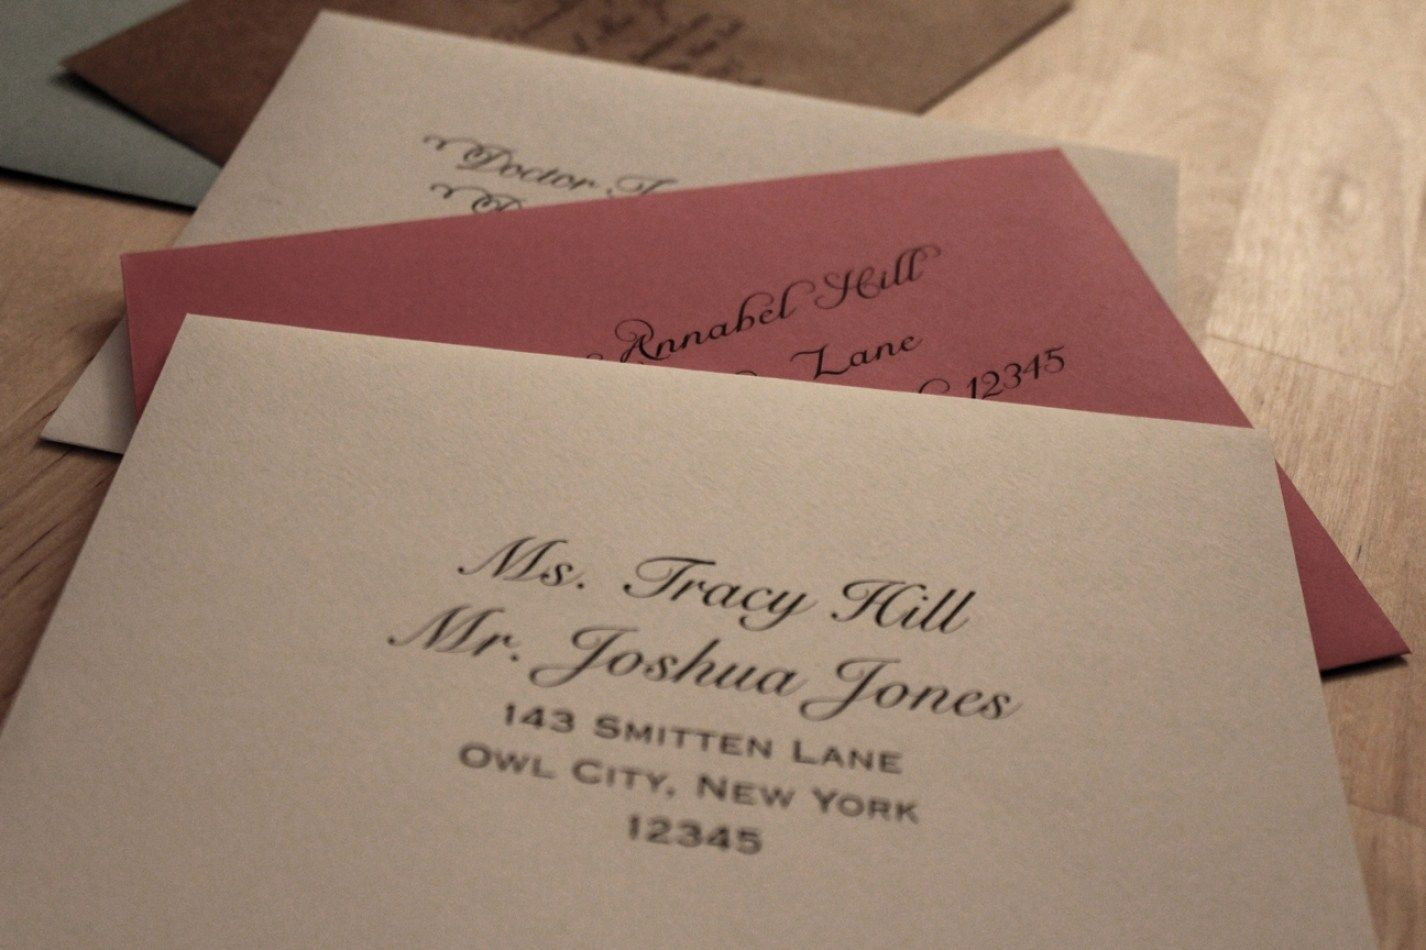 30 Address Etiquette Invitation Return Wedding | Etiquette, Wedding ...